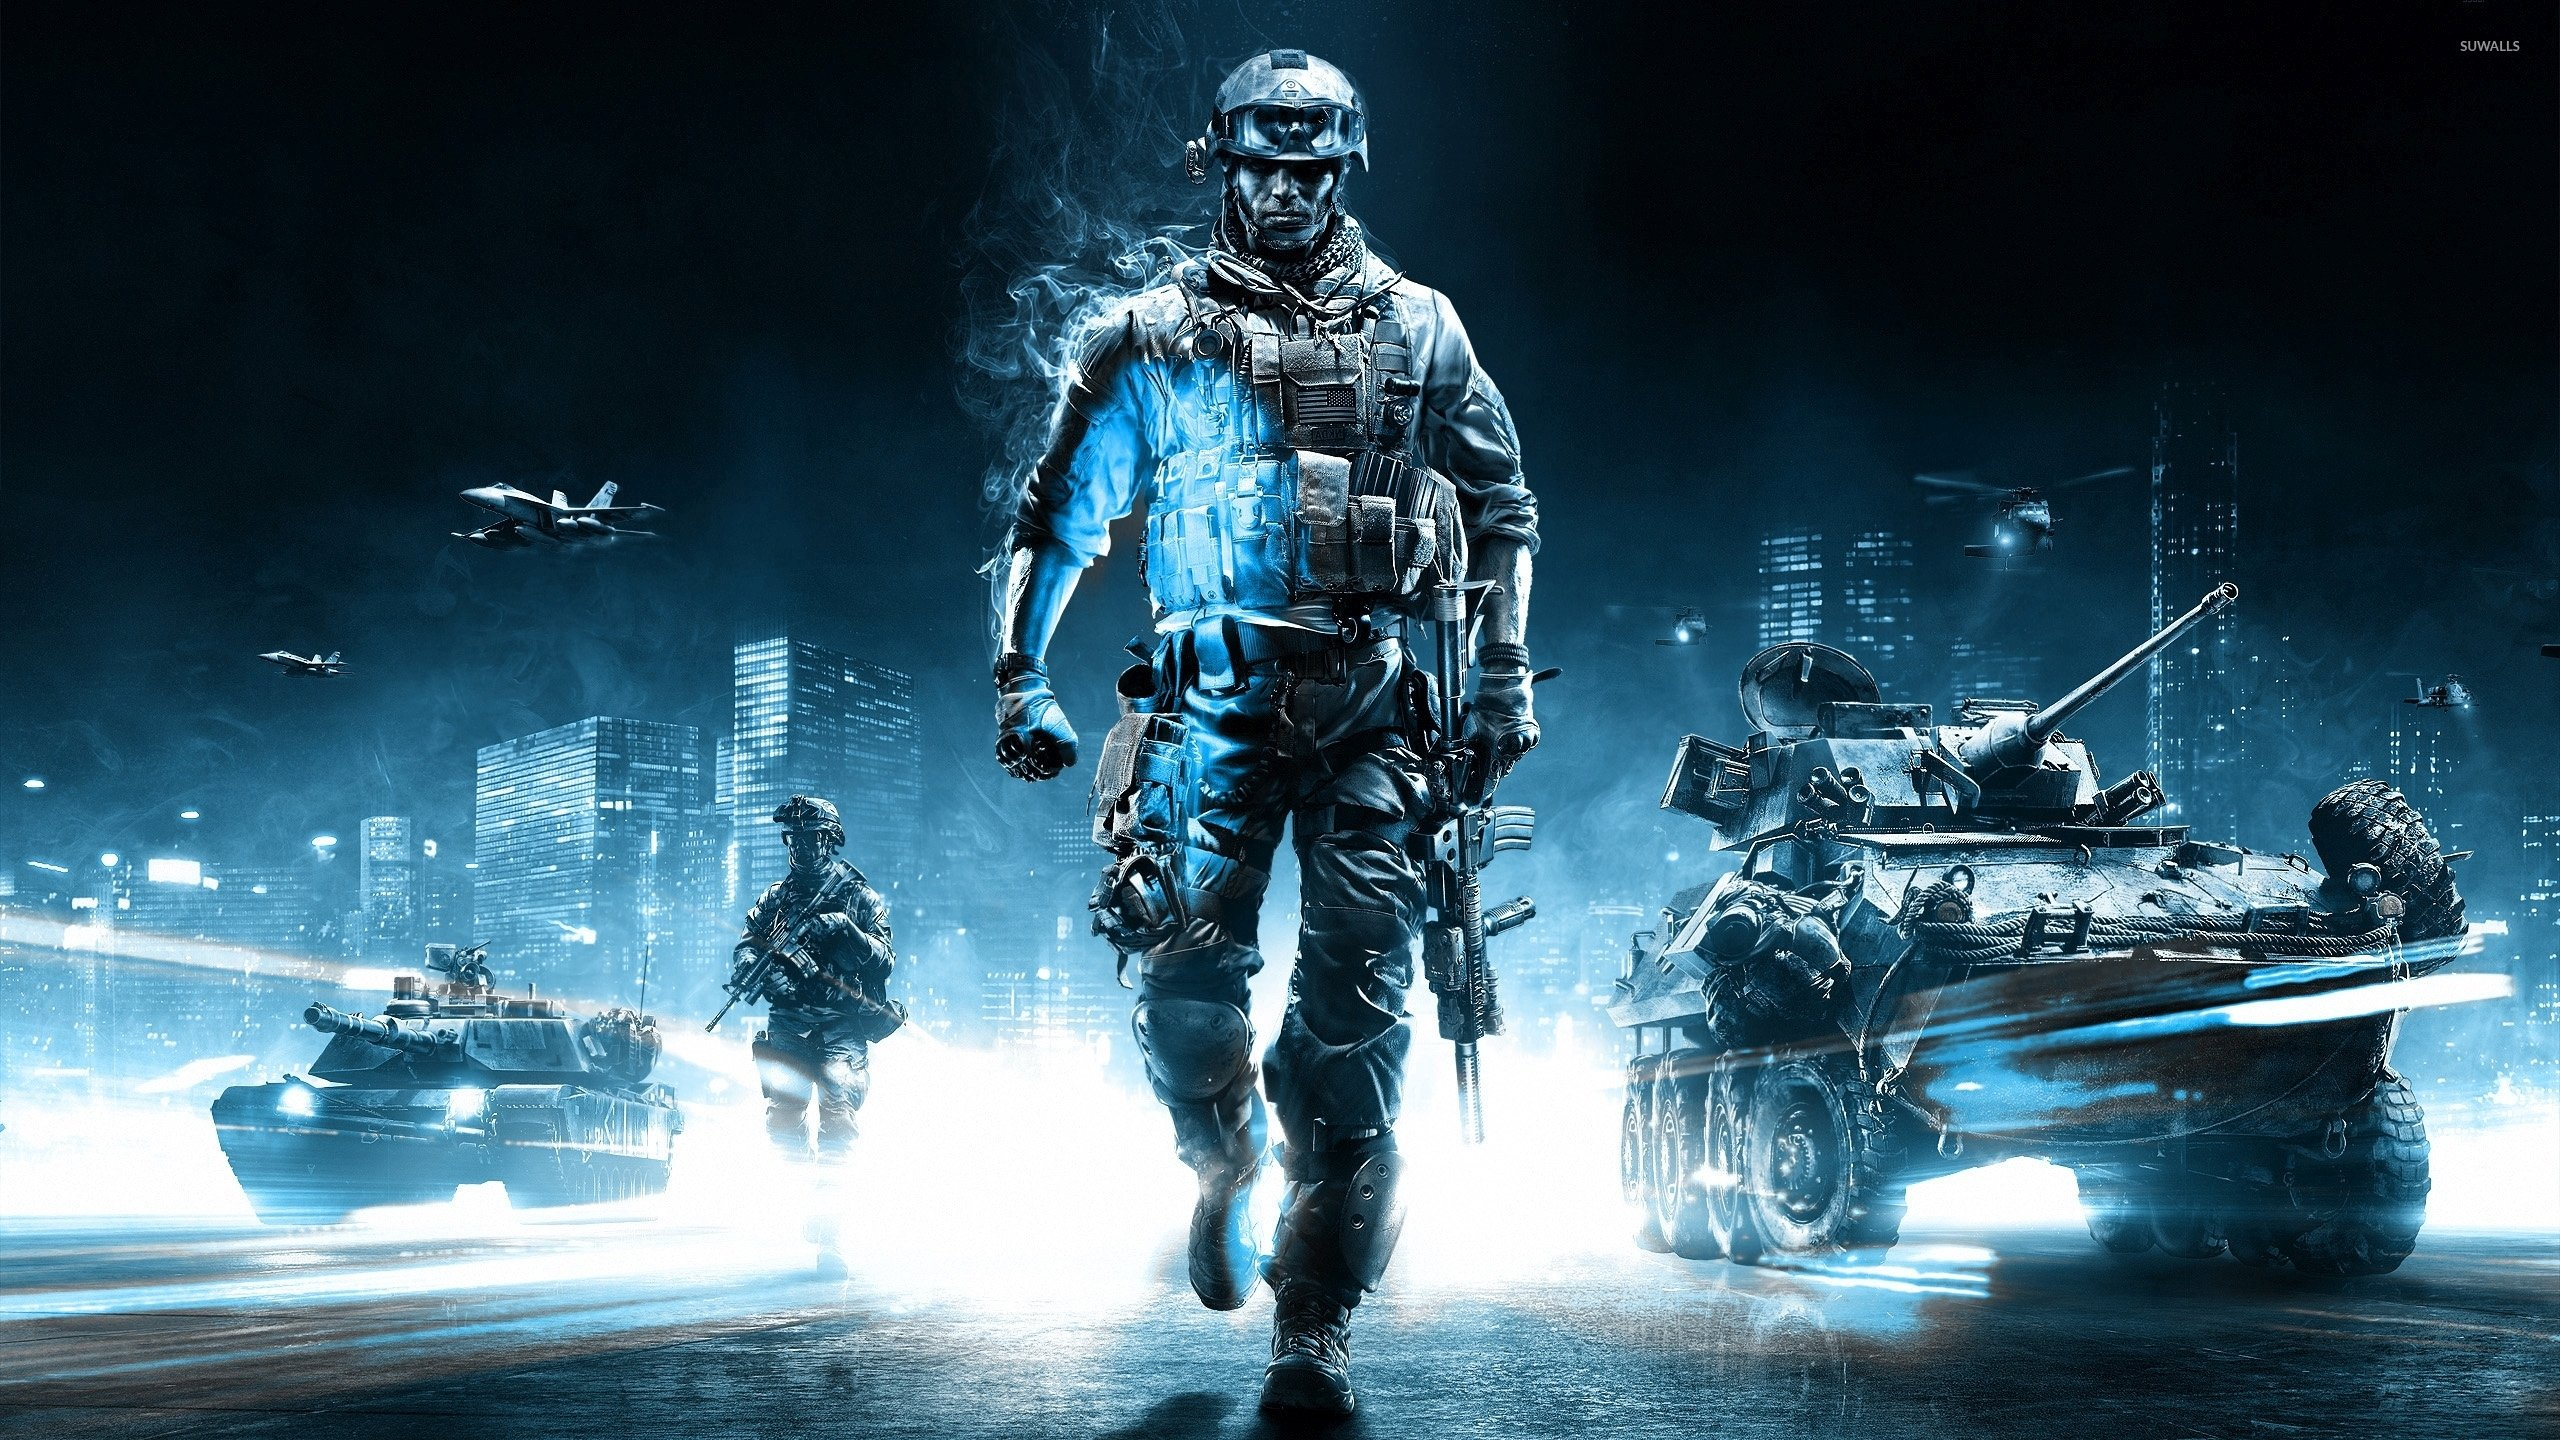 Battlefield 4 wallpaper 2560x1440 2560x1440